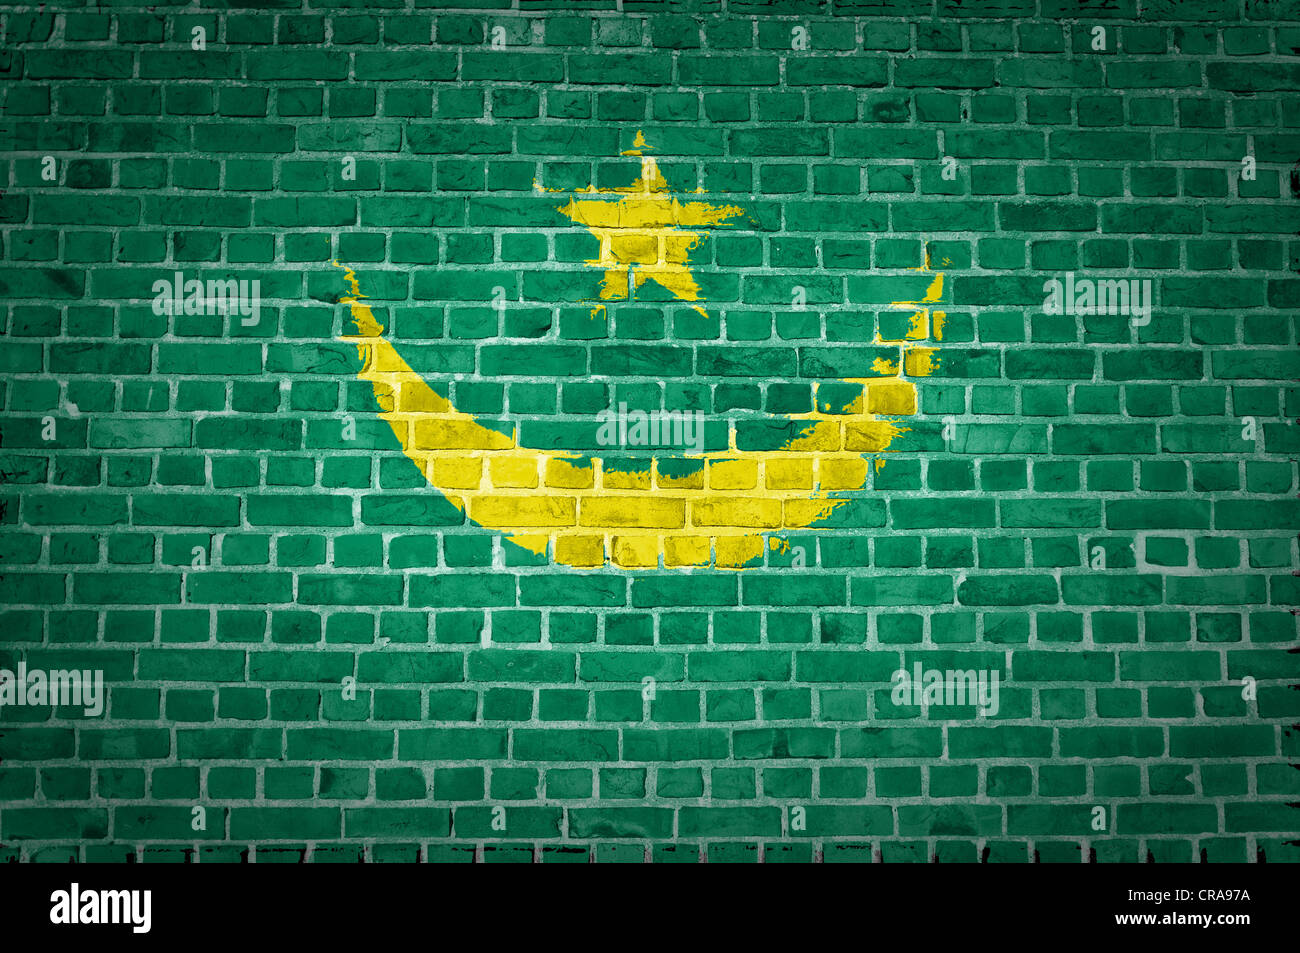 An image of the Mauritania flag painted on a brick wall in an urban location - Stock Image